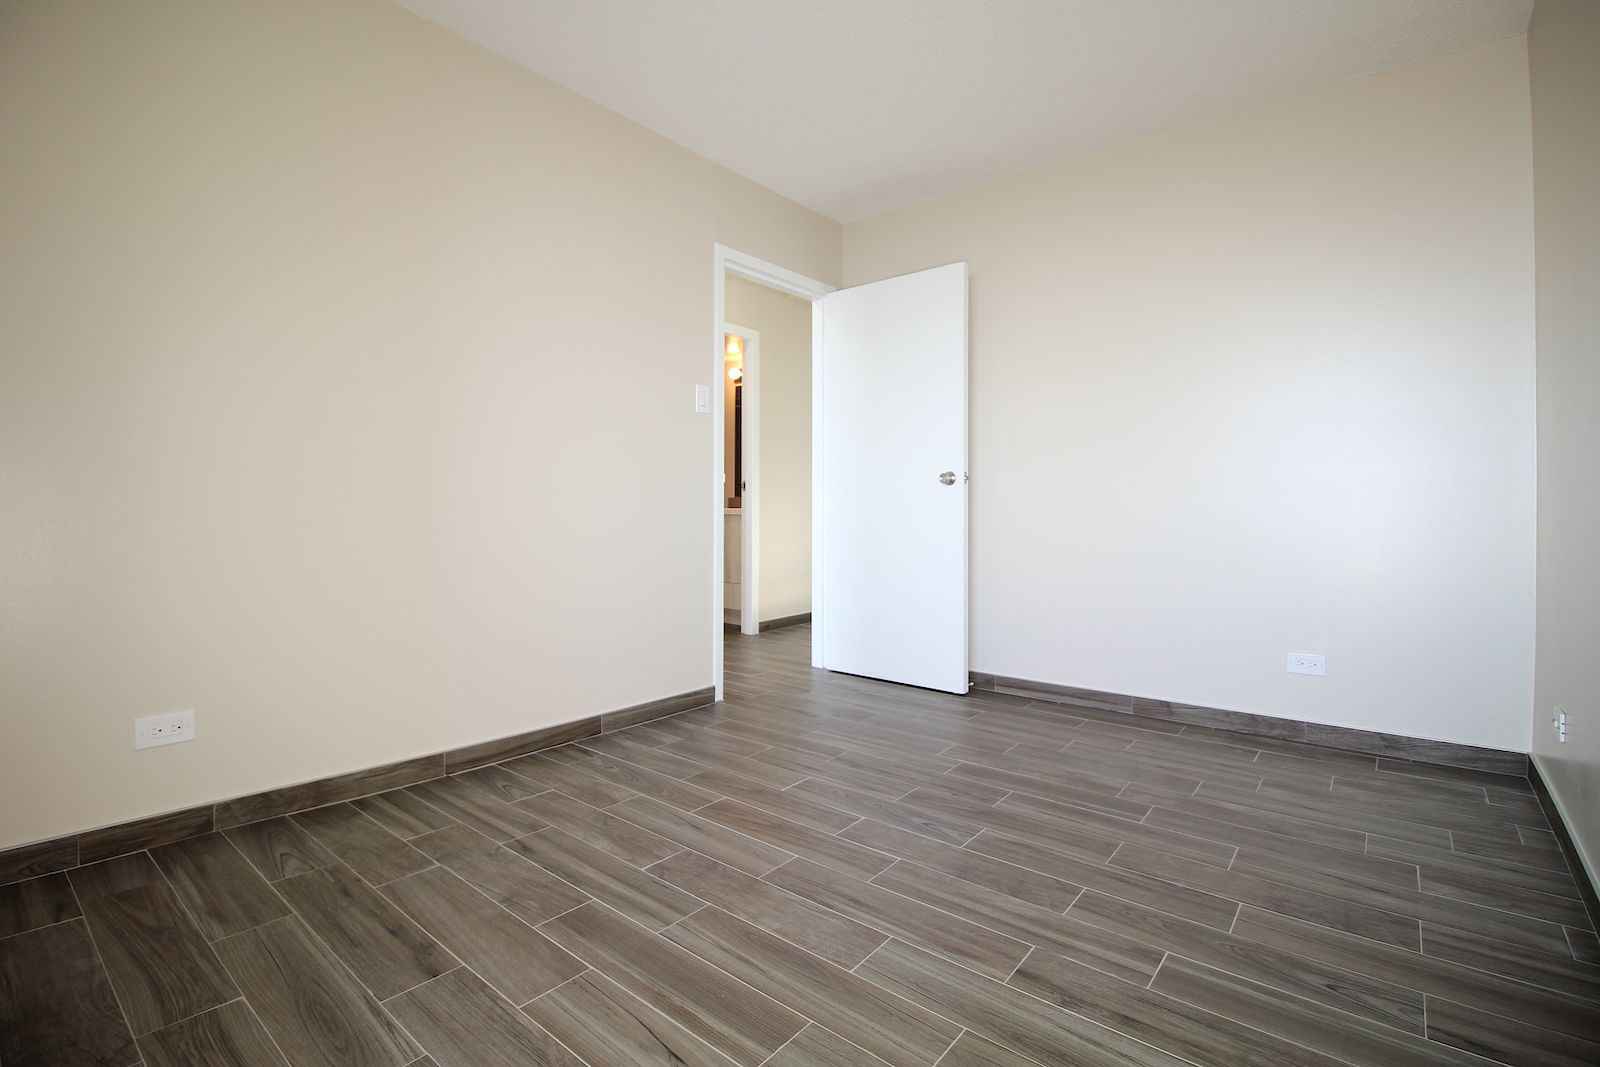 calgary hardwood flooring stores of calgary apartment for rent downtown heart of downtown this clean inside completely renovated 2 bedroom stunning apartment